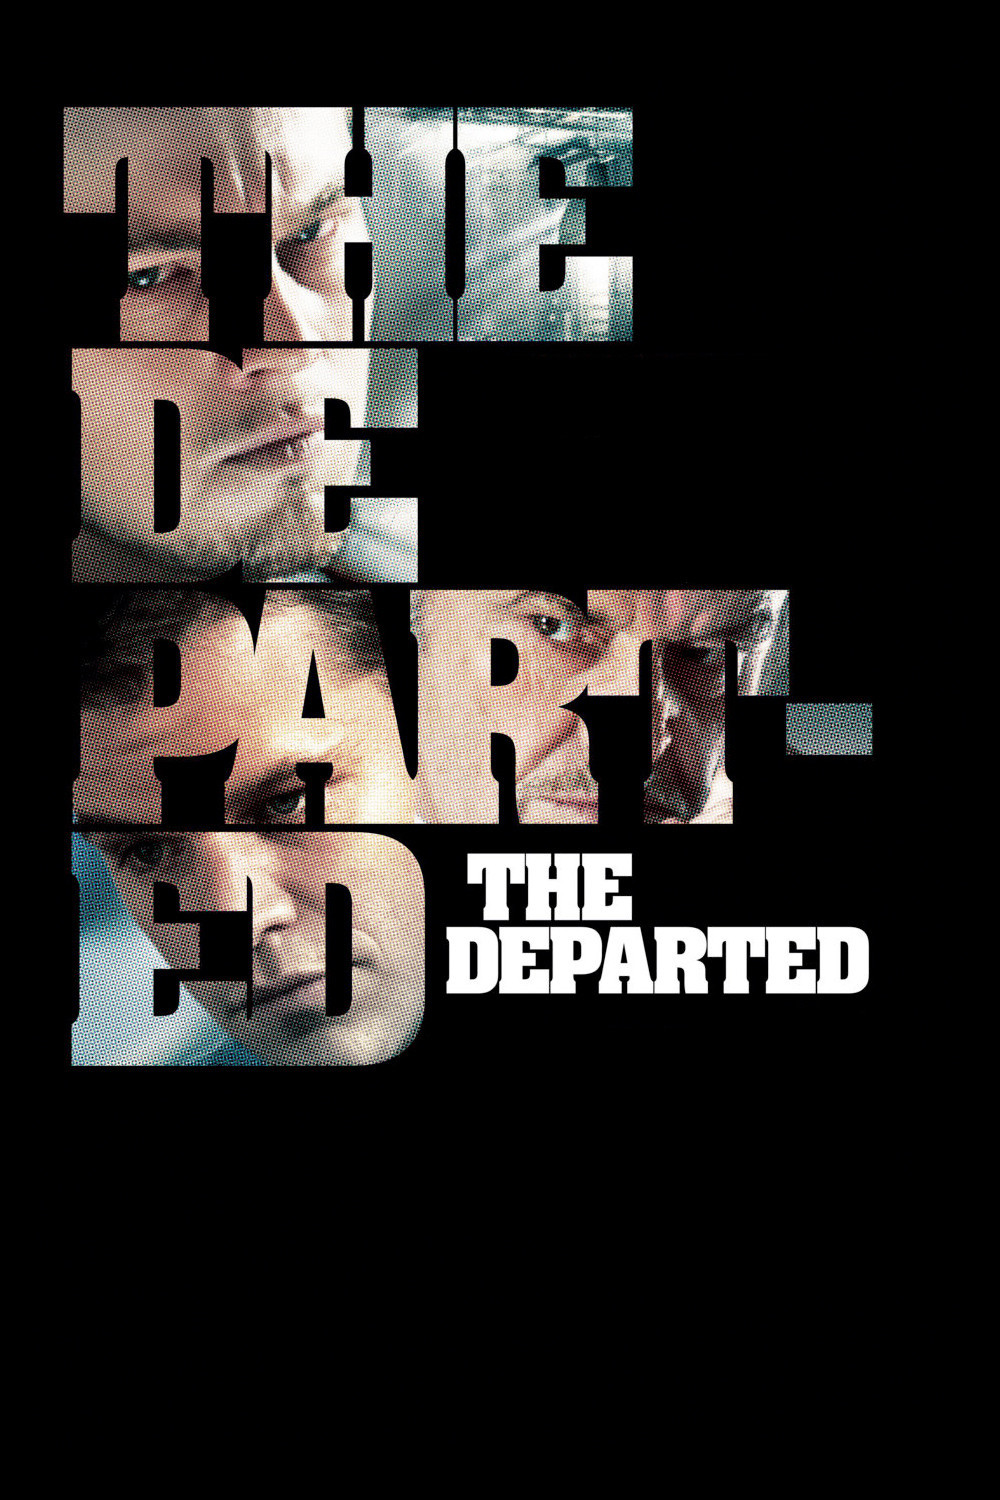 The Departed - Il bene e il male